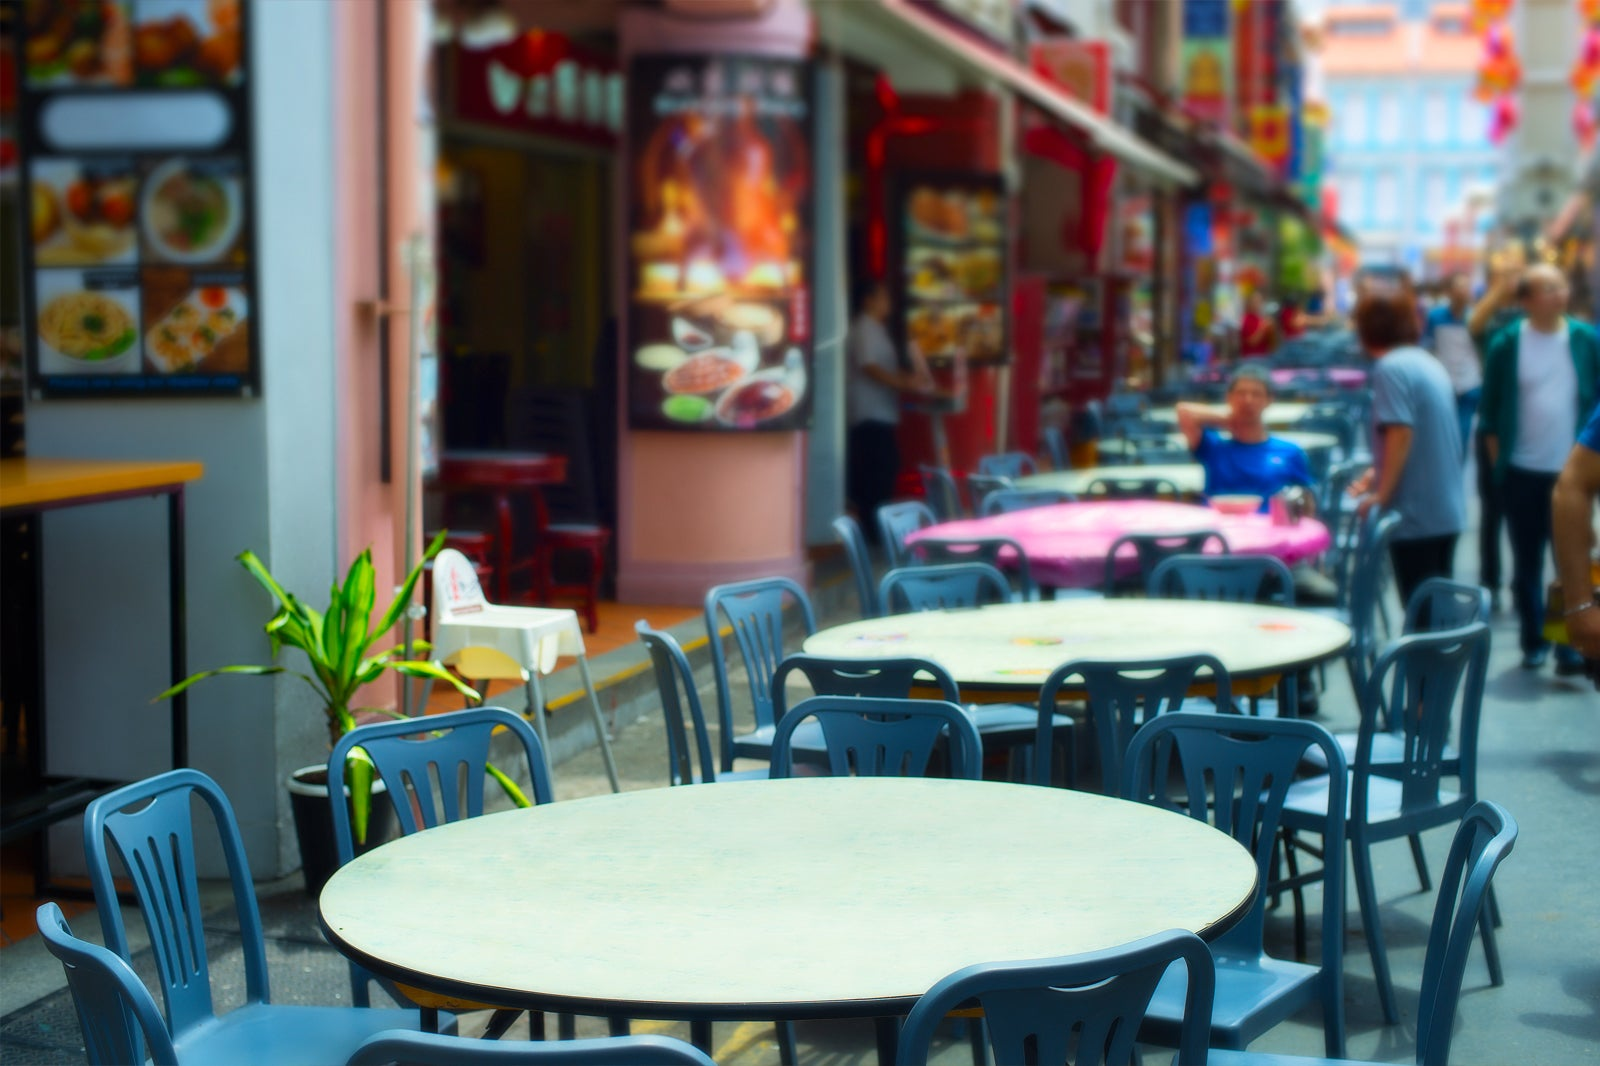 Chinatown Food Street in Singapore - Famous Hawker Center on